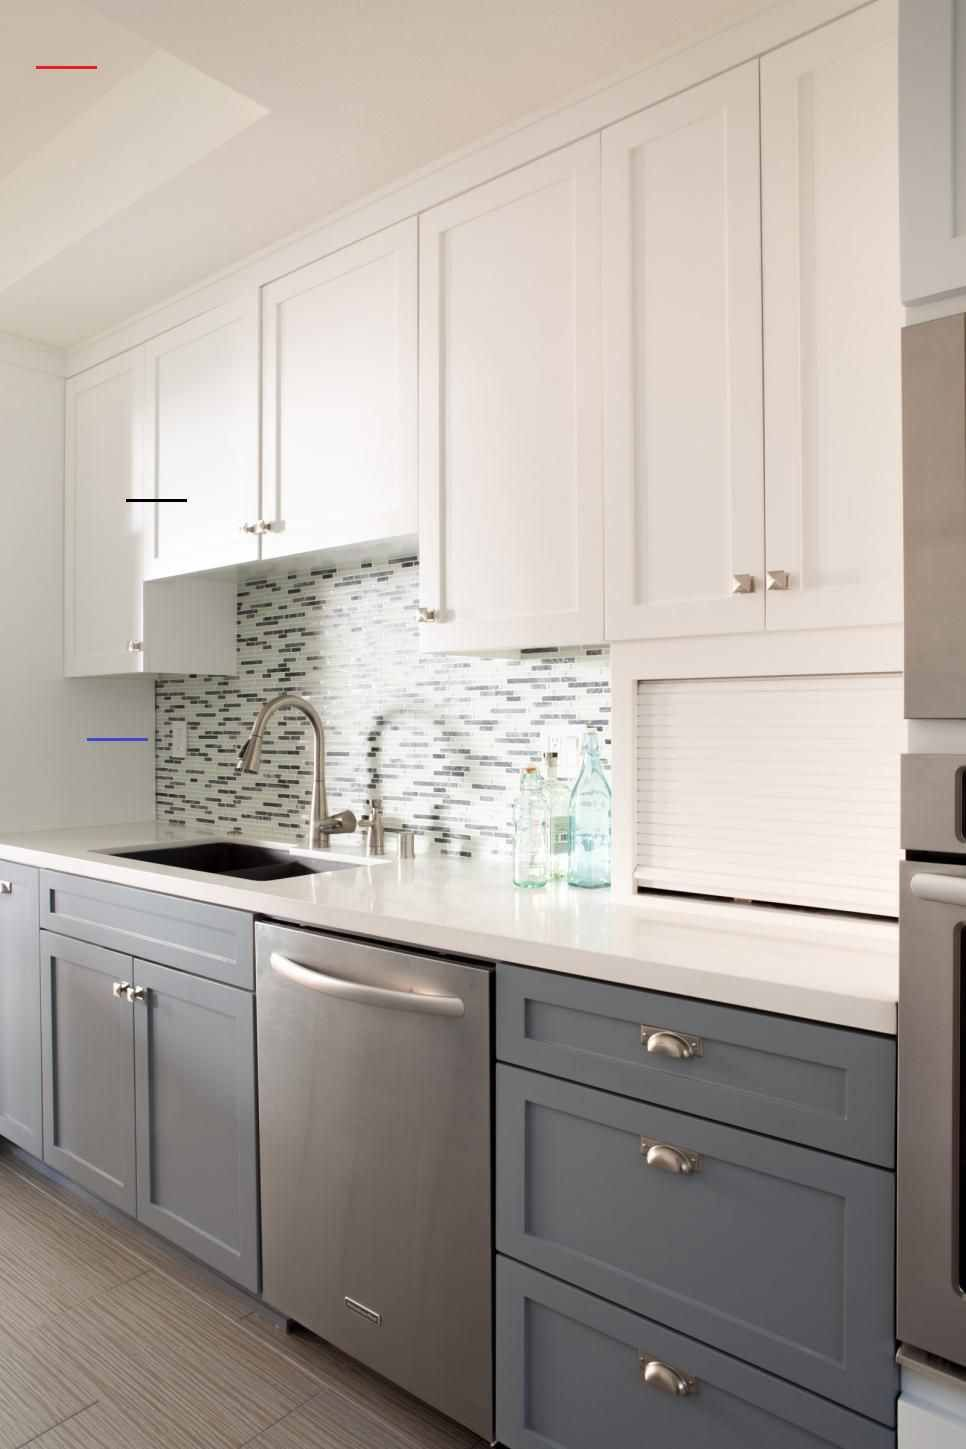 Home Darkkitchencabinets Designer Shirry Dolgin Adds Visual Interest And Functionality To Thi Kitchen Cabinets Diy Kitchen Cabinets Kitchen Cabinet Trends